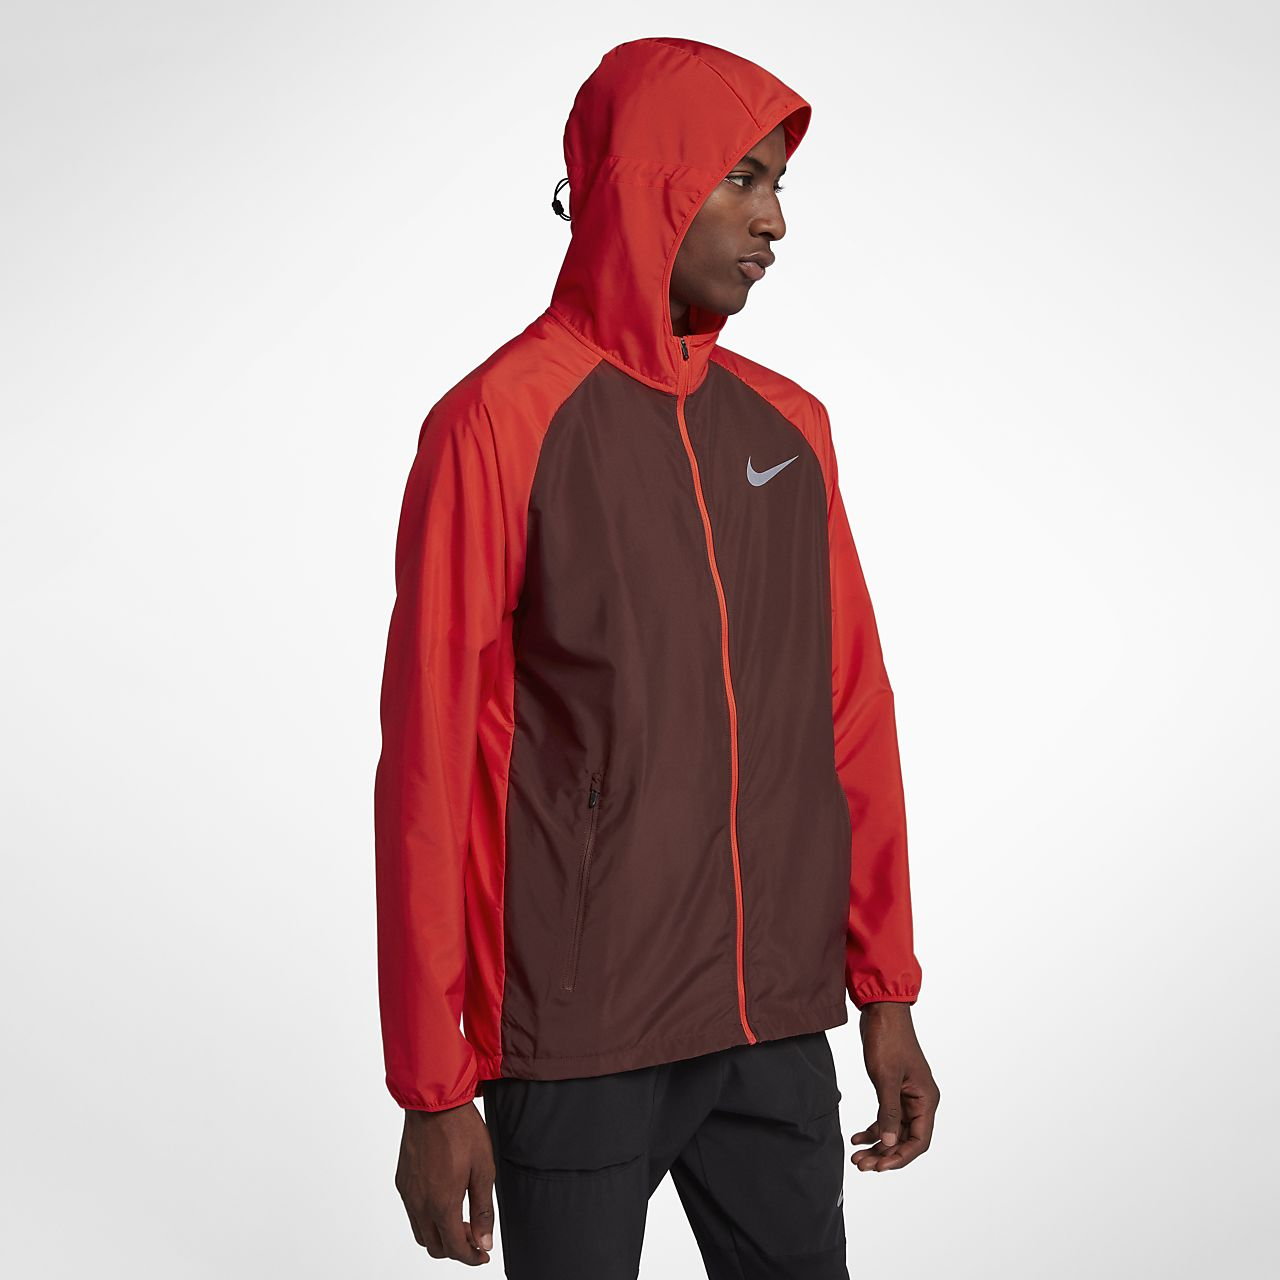 ad6920602135 Nike Essential Men s Running Jacket. Nike.com FI